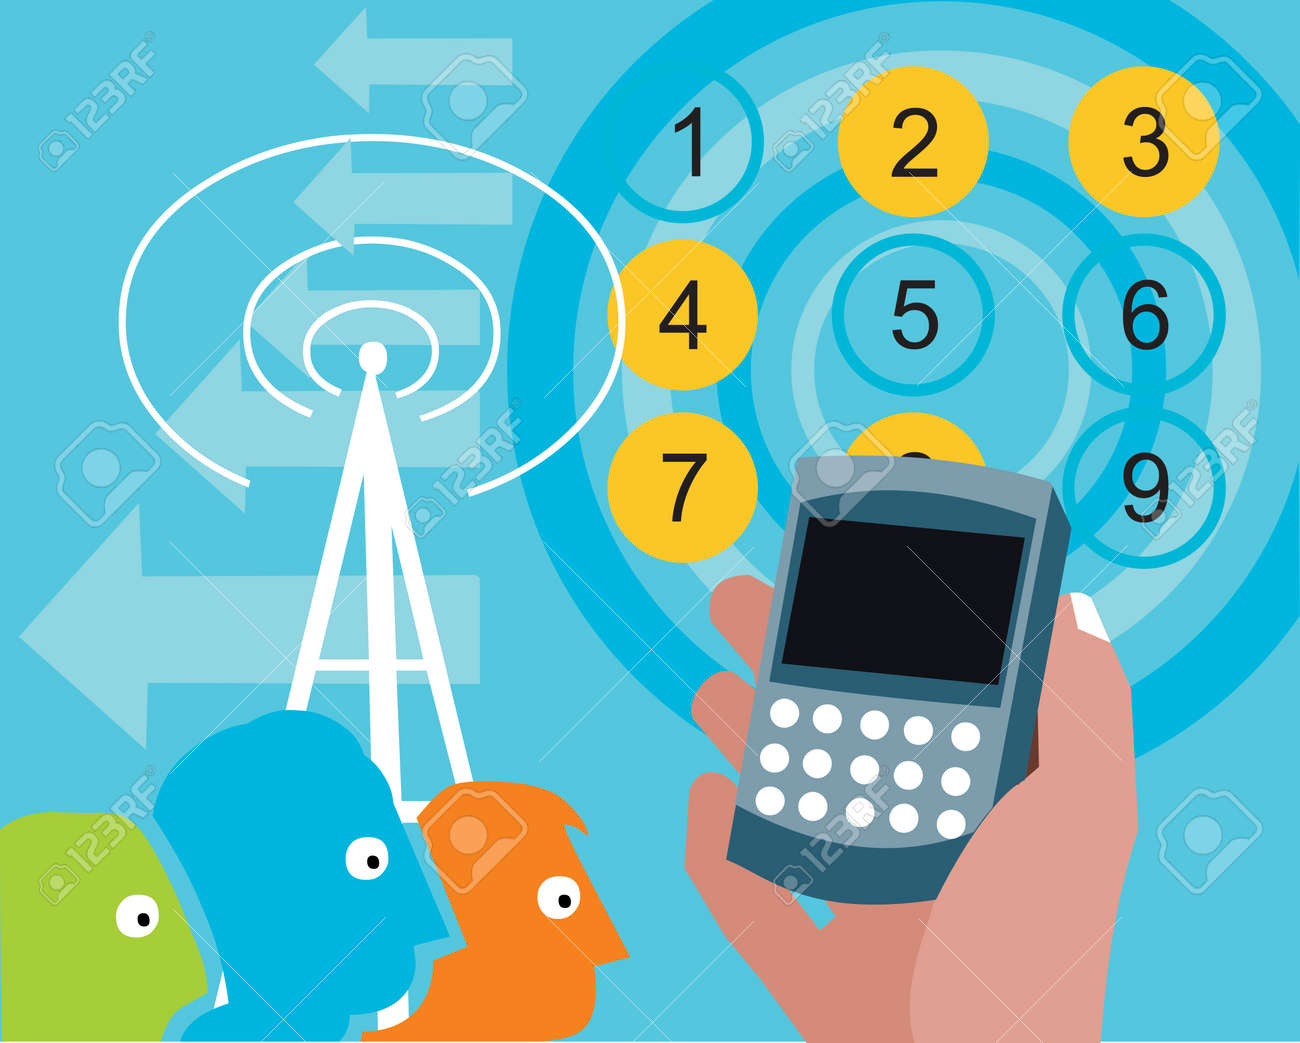 Cellphone in hand with tower and numbers Stock Photo - 9688816